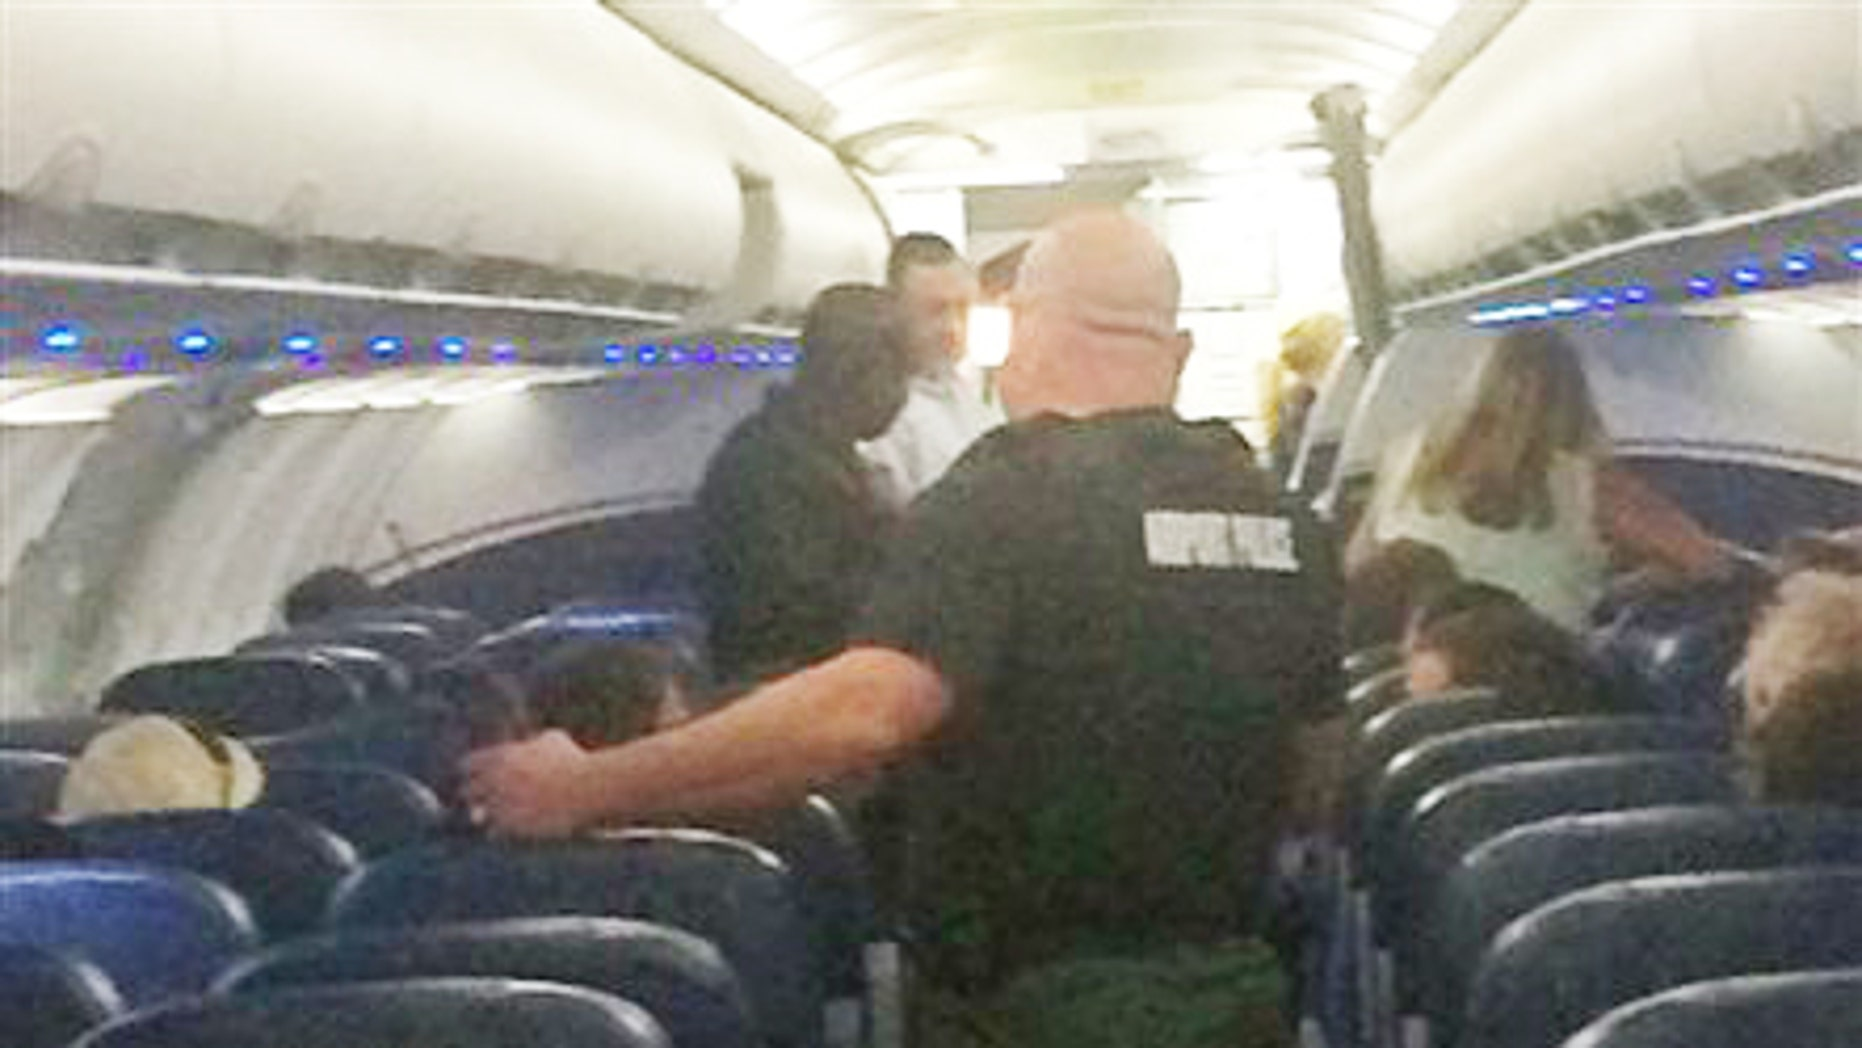 This Tuesday, Nov. 3, 2015, photo provided shows airport police aboard a plane after an emergency landing at Eisenhower National Airport in Wichita, Kan. The U.S. Attorney's Office says a disruptive passenger who forced the diversion of the American Airlines flight from Phoenix to New York will face federal charges.